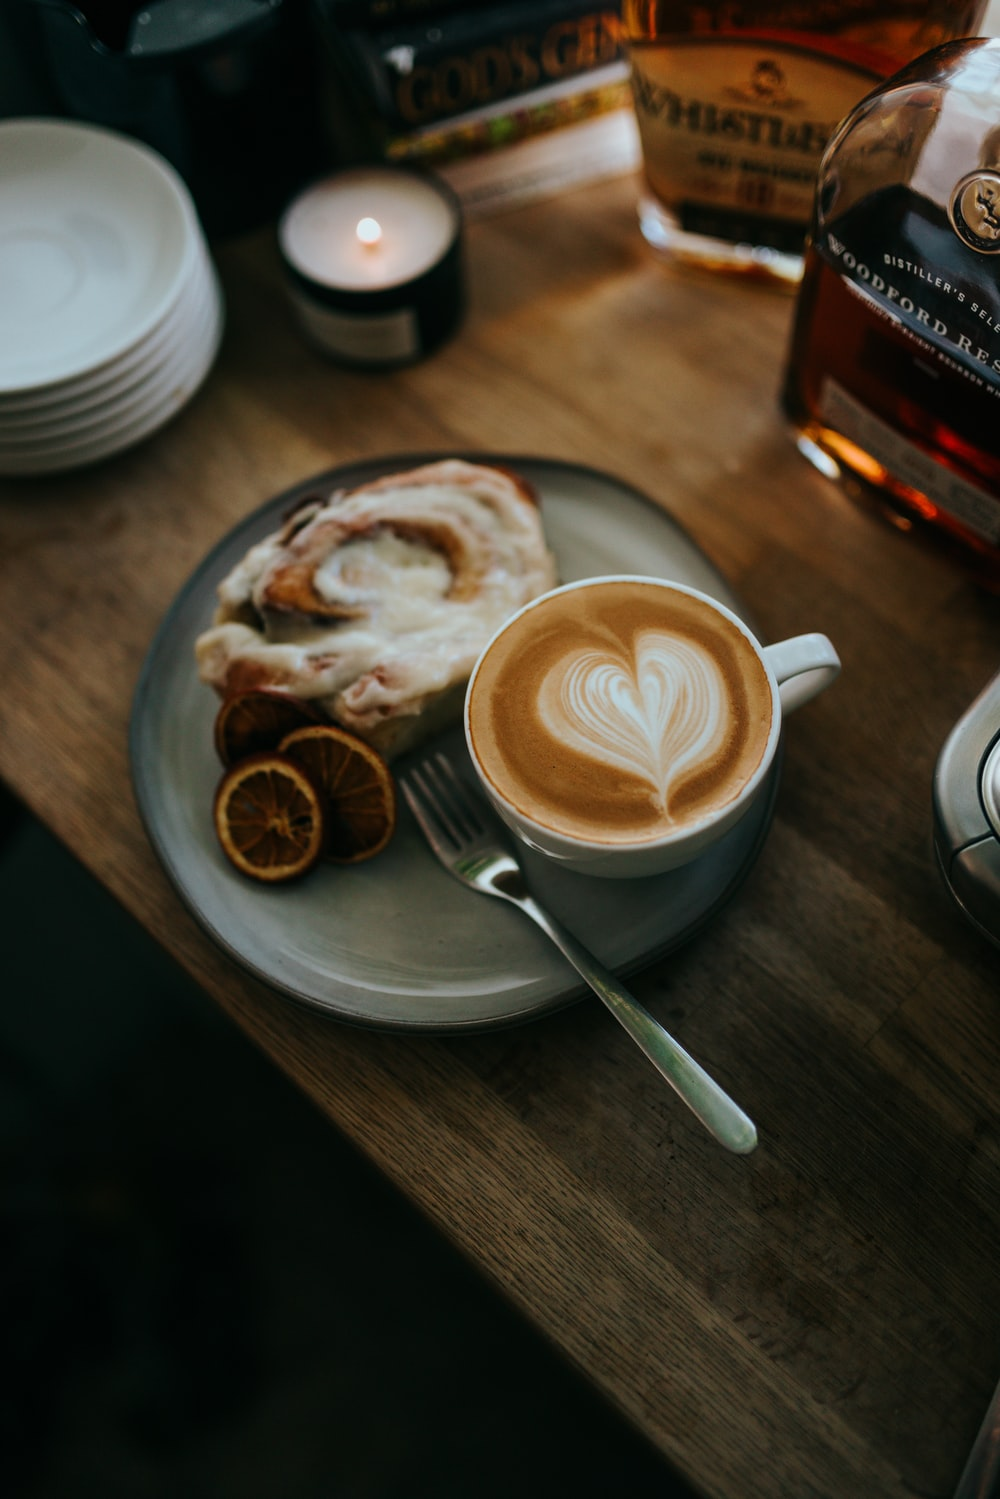 cappuccino in white ceramic cup on saucer beside stainless steel spoon